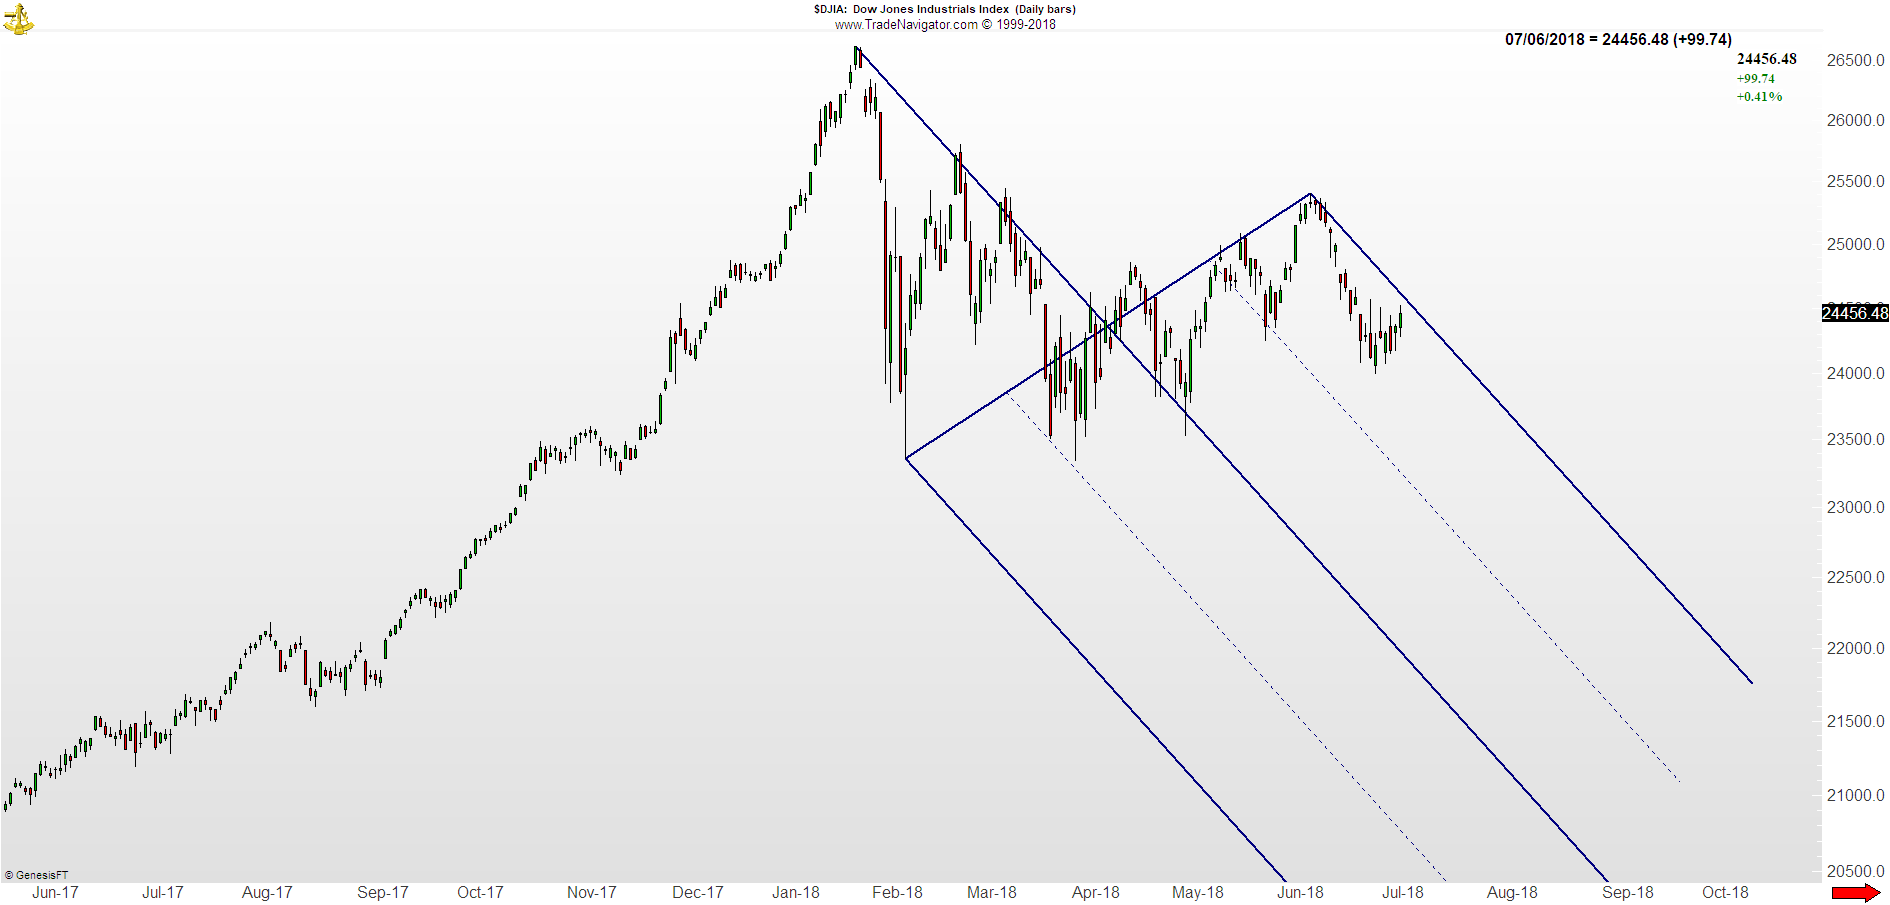 DJIA price action technical analysis